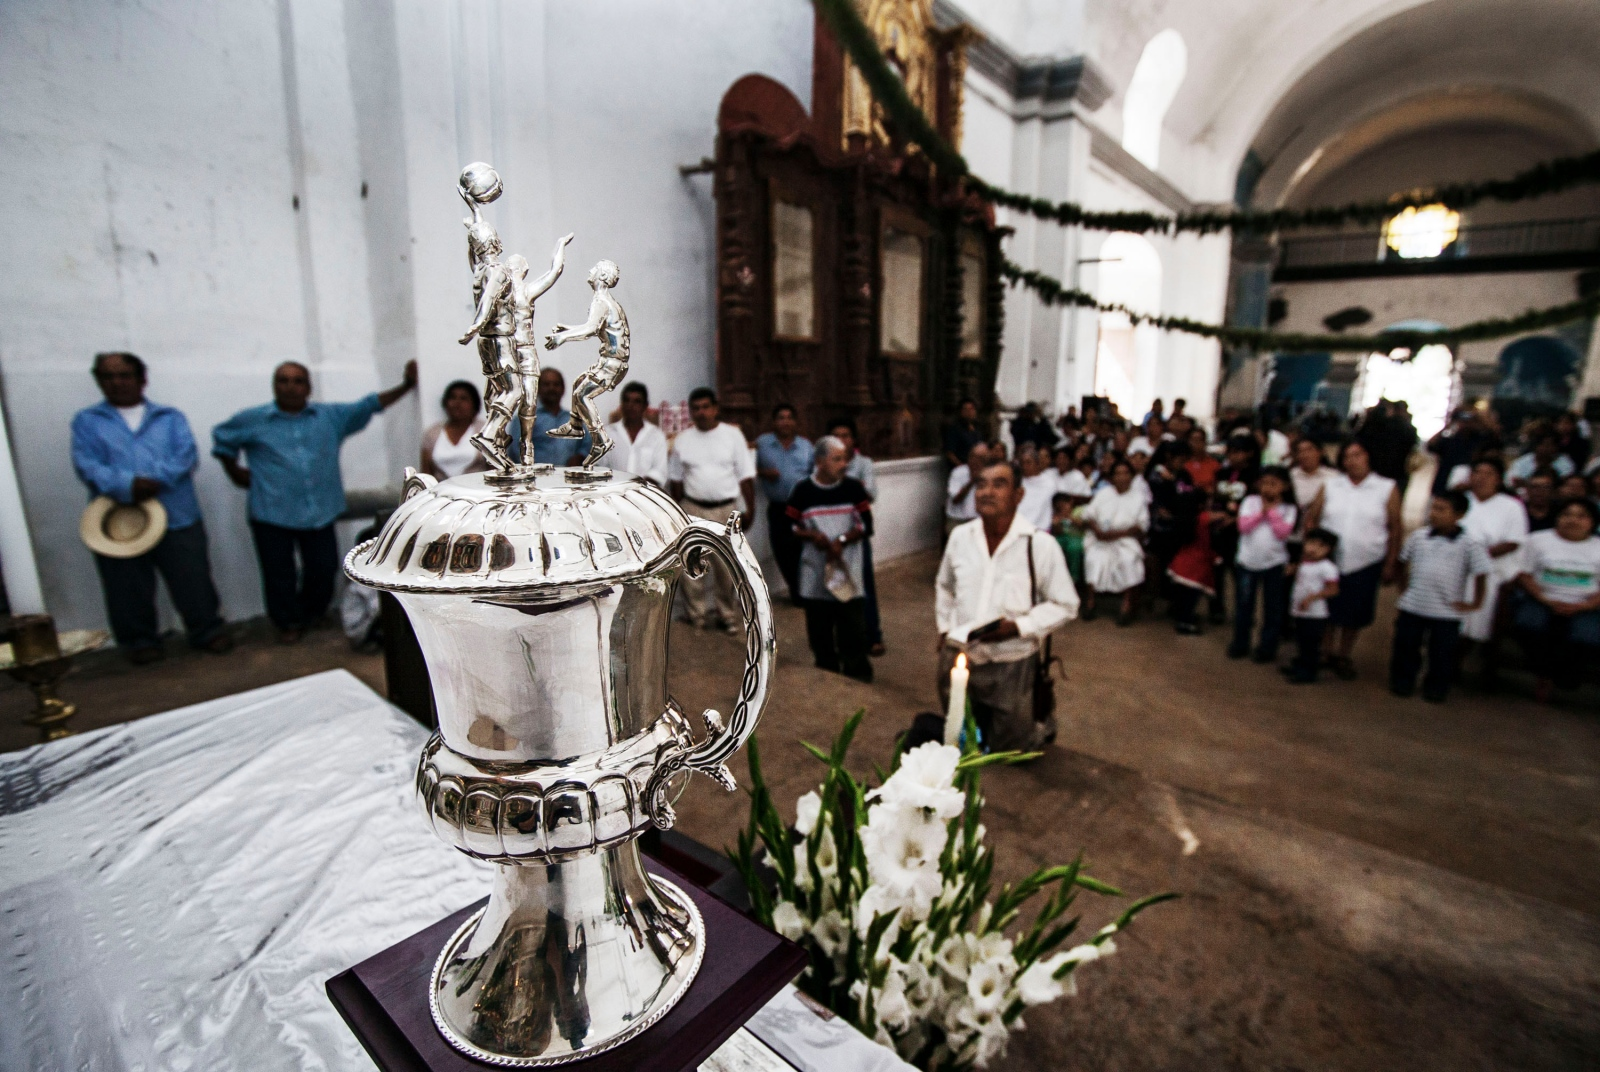 SAN CRISTÓBAL LACHIRIOAG, NOVEMBER 21, 2009. Villagers bless the first place basketball trophy in an early morning ceremony in San Cristobal Lachiroag. The trophy was valued at around $3,000.